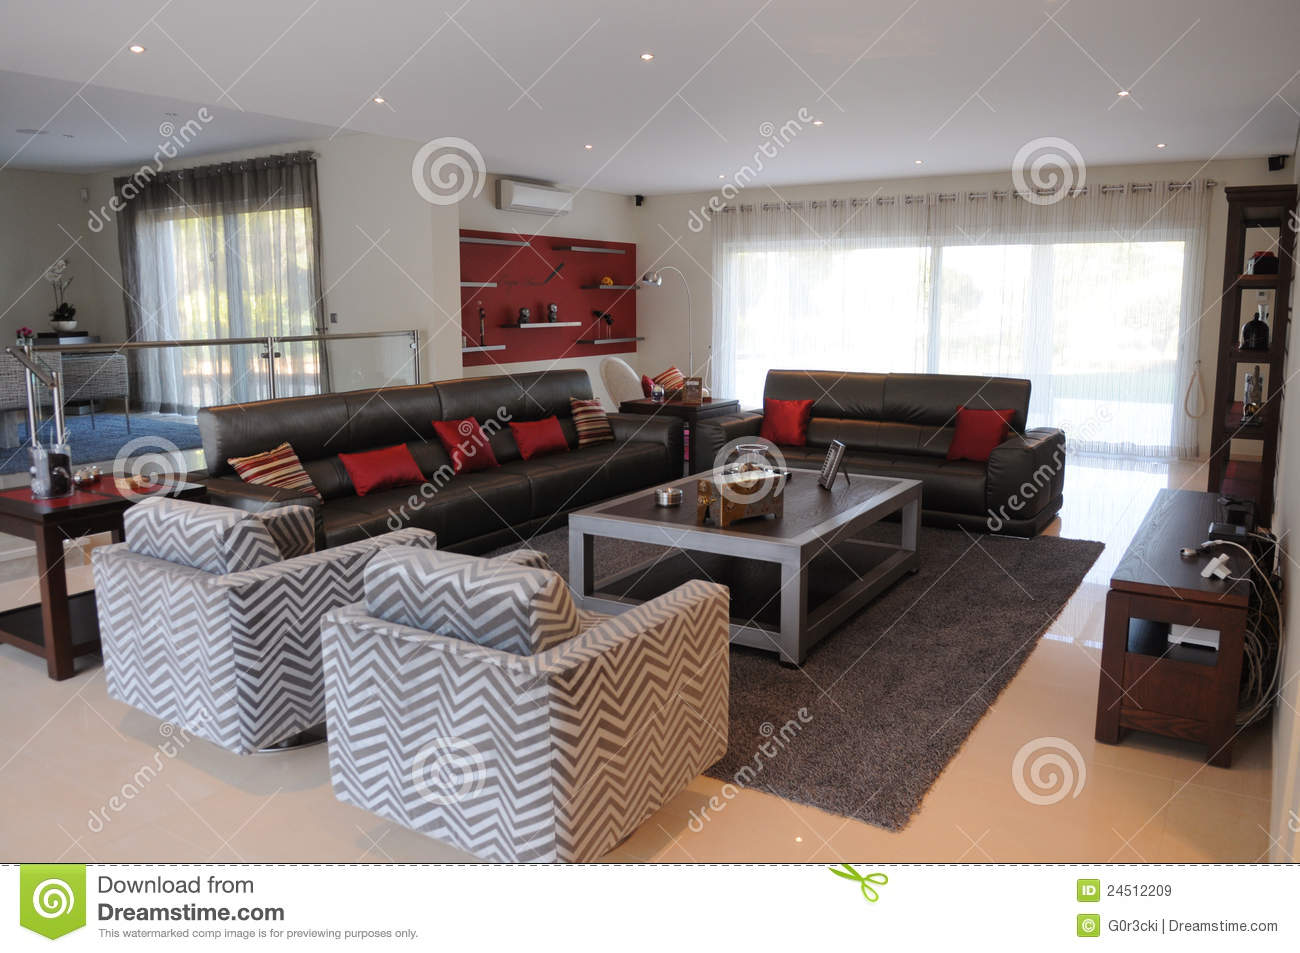 Modern living room stylish parlor luxury home stock for Parlor or living room